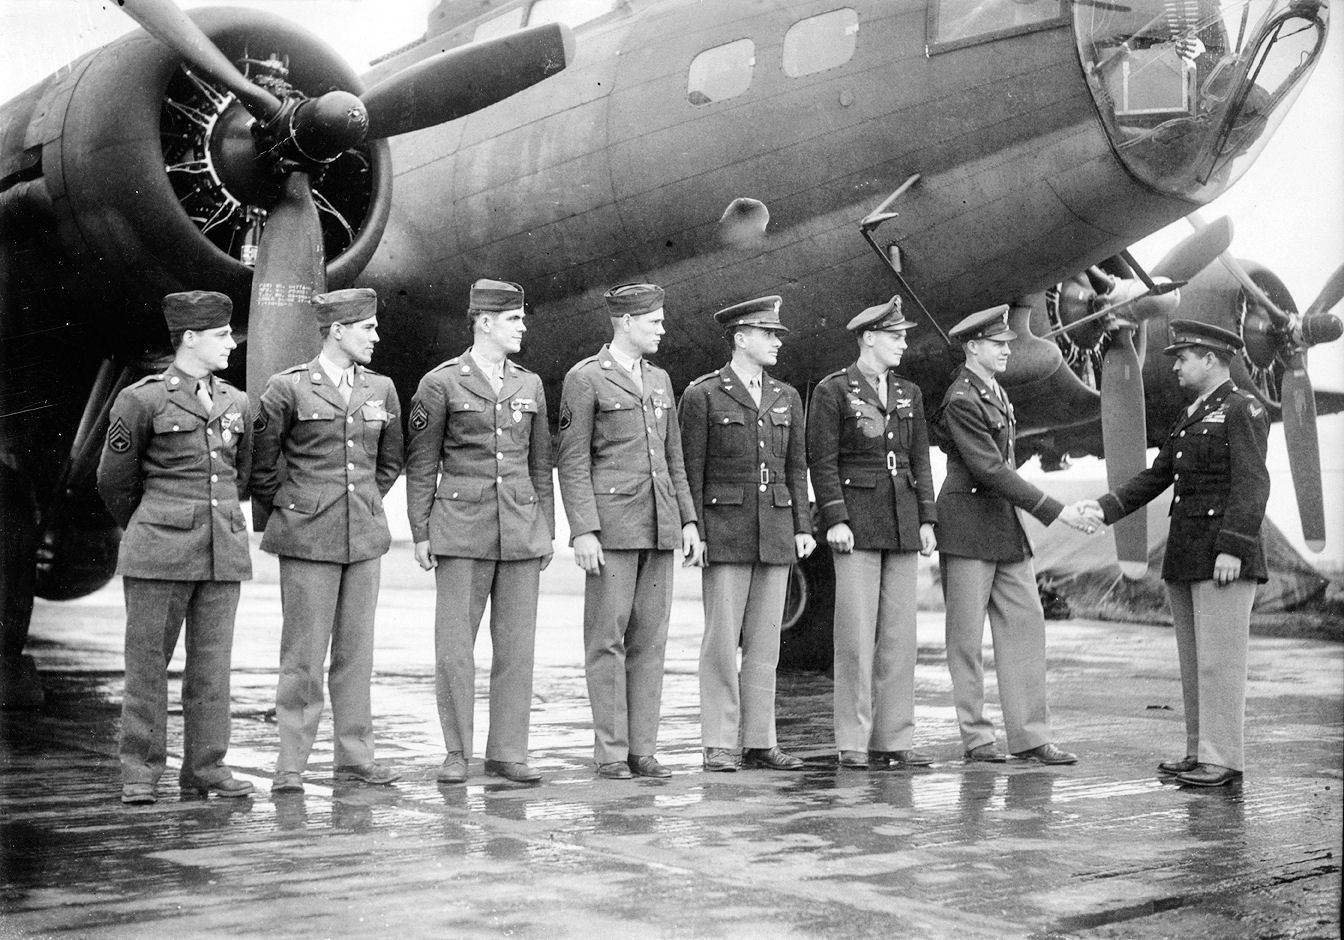 Colonel Curtis LeMay officially congratulates a bomber crew of the 306th Bomb Group in front of their B-17 Flying Fortress at Chelveston Airfield, England, 2 June 1943. (USAAF Photo/Wikimedia)